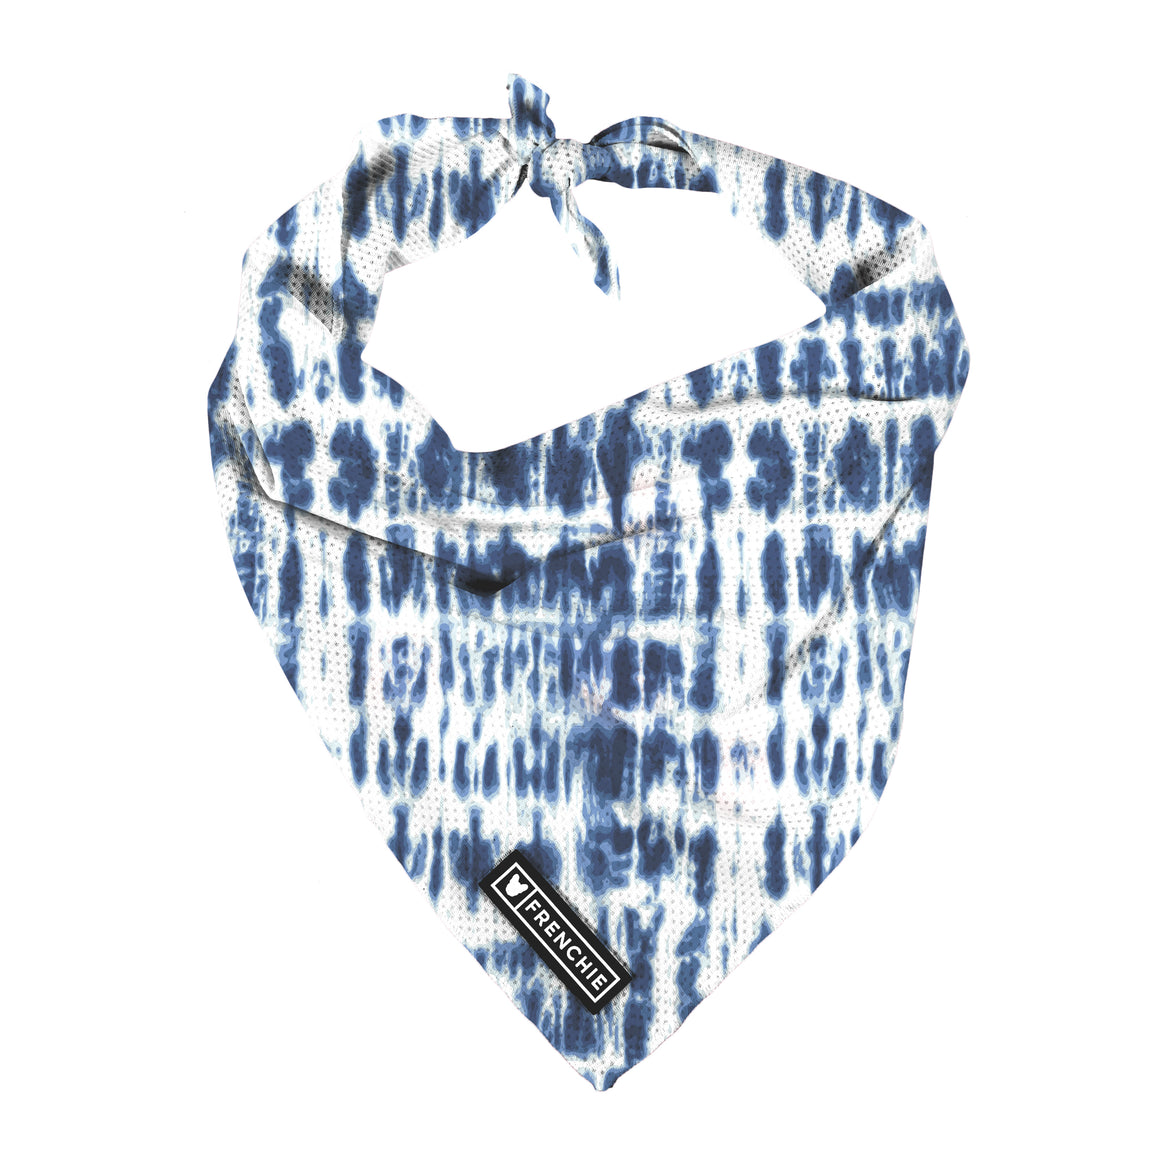 Frenchie Cooling Bandana- Blue Tie Dye